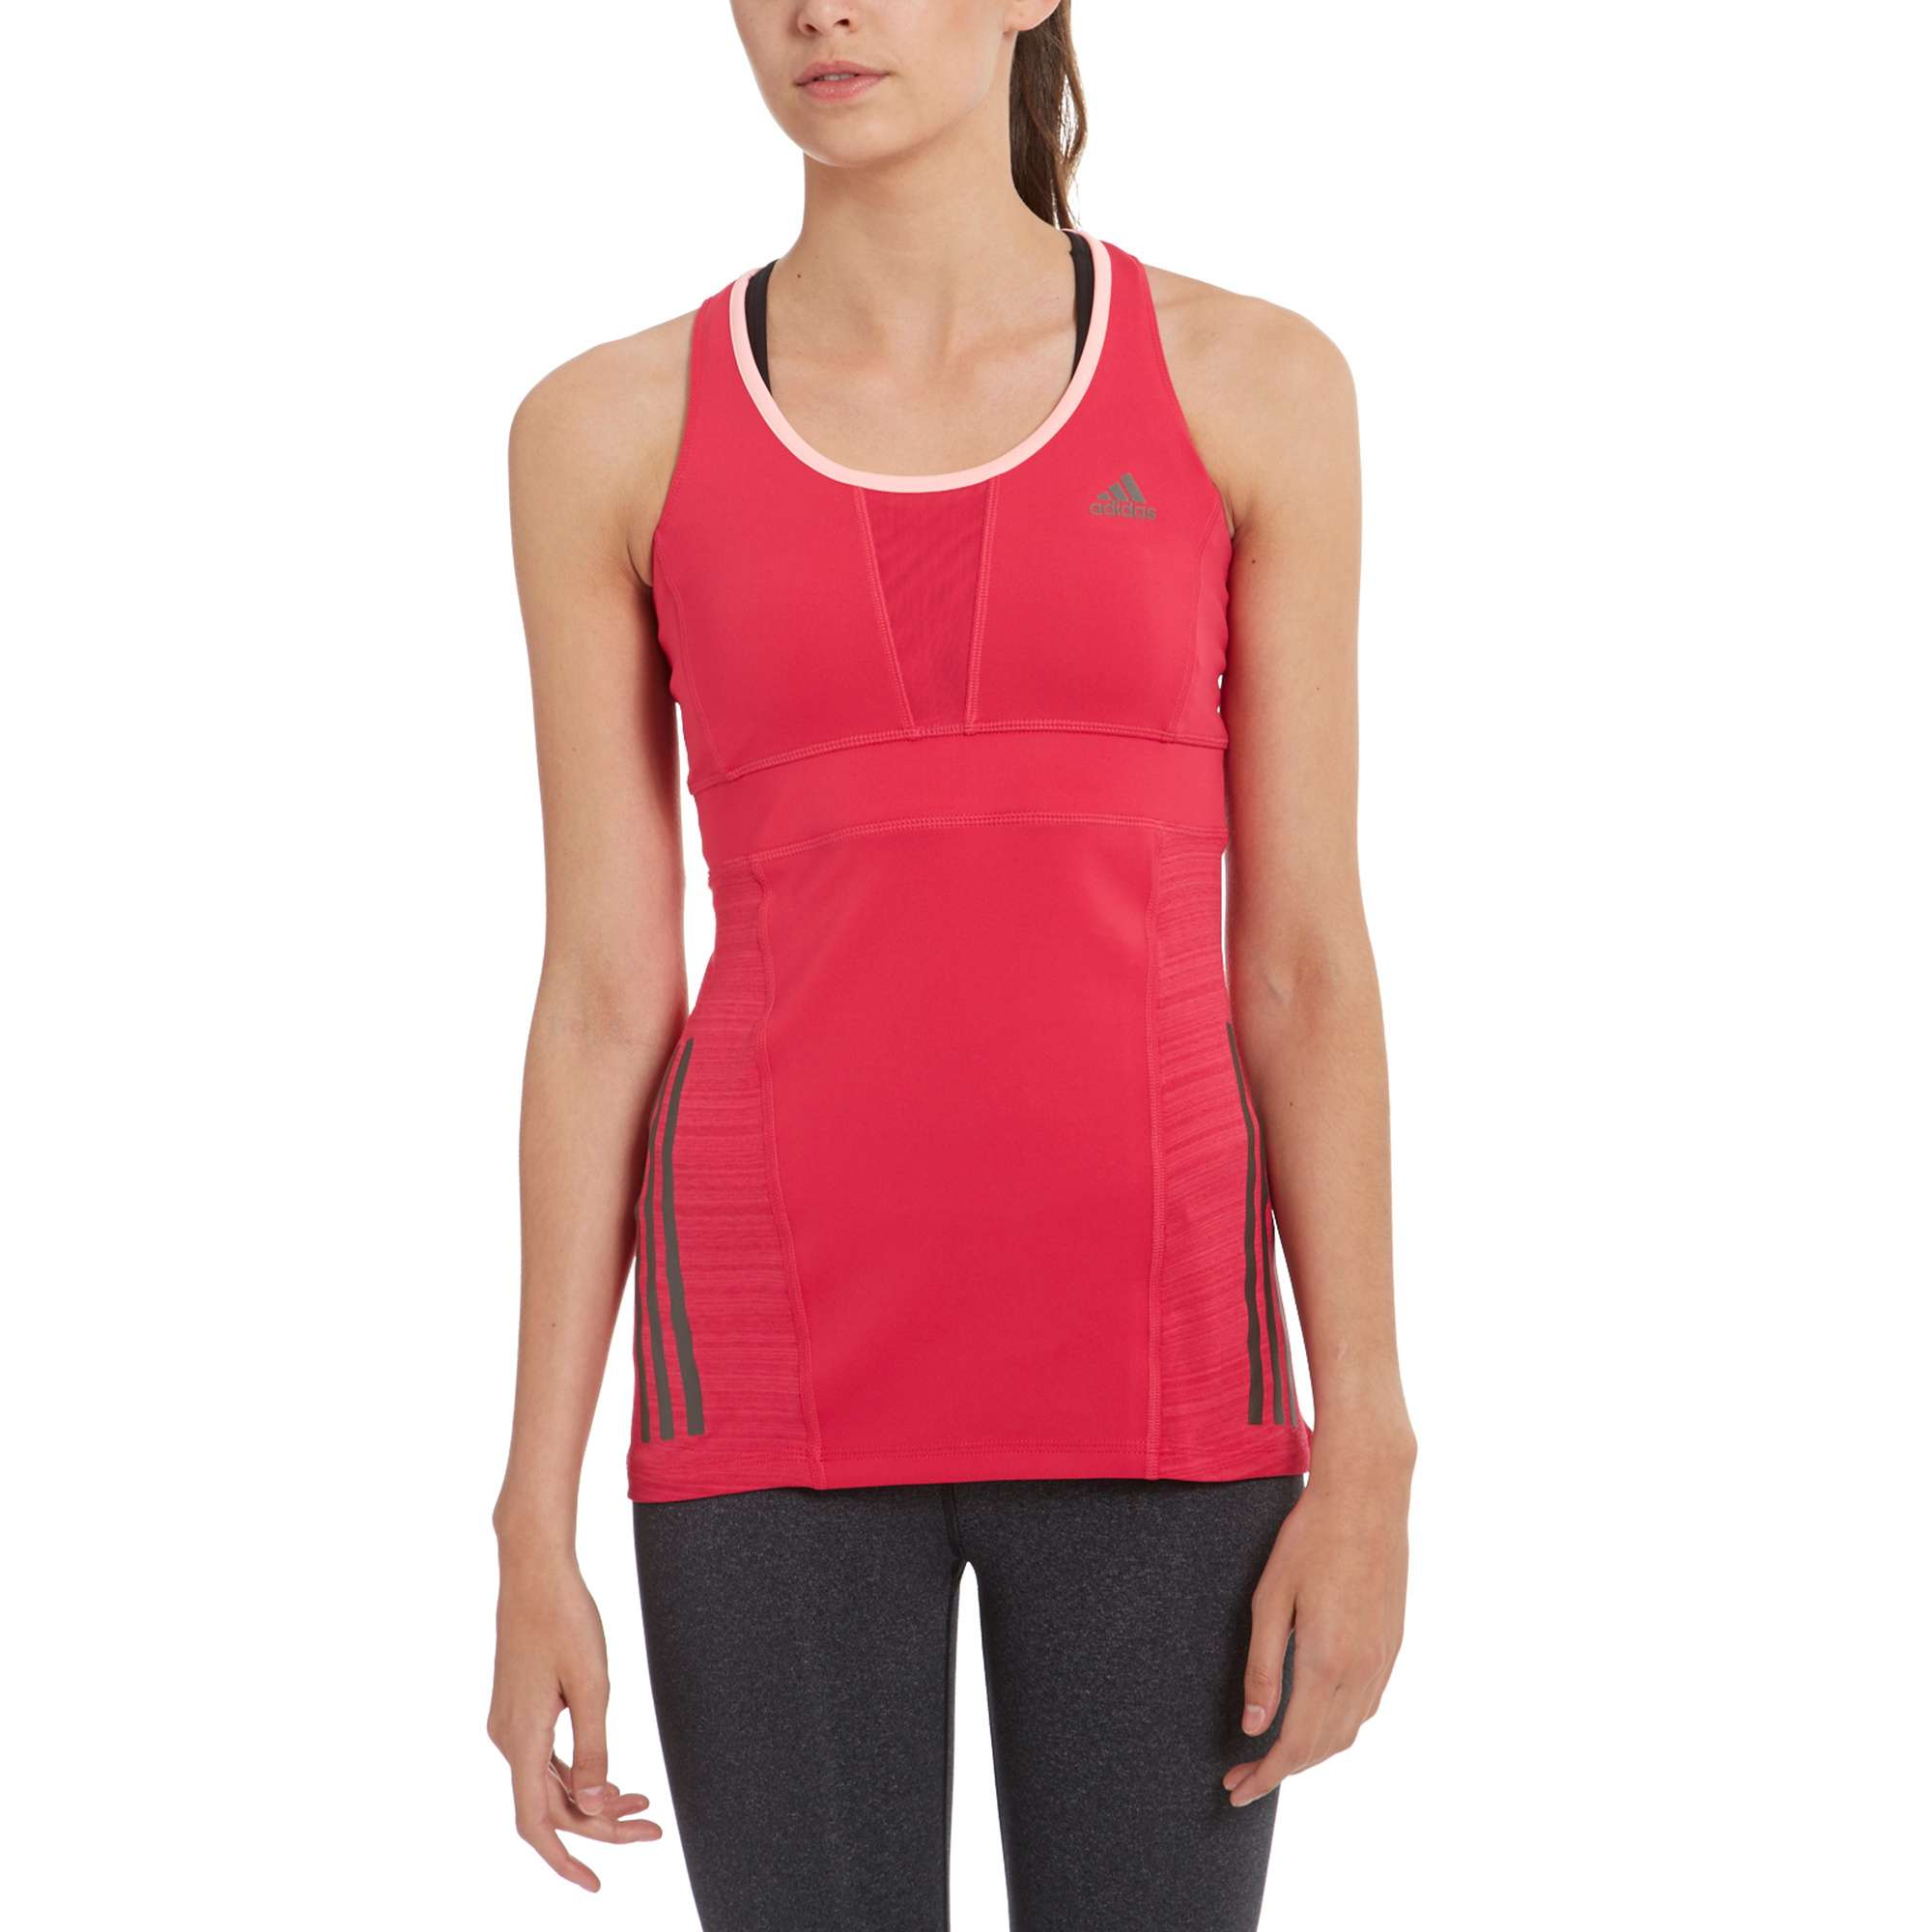 ADIDAS Women's SuperNova Support Tank Top